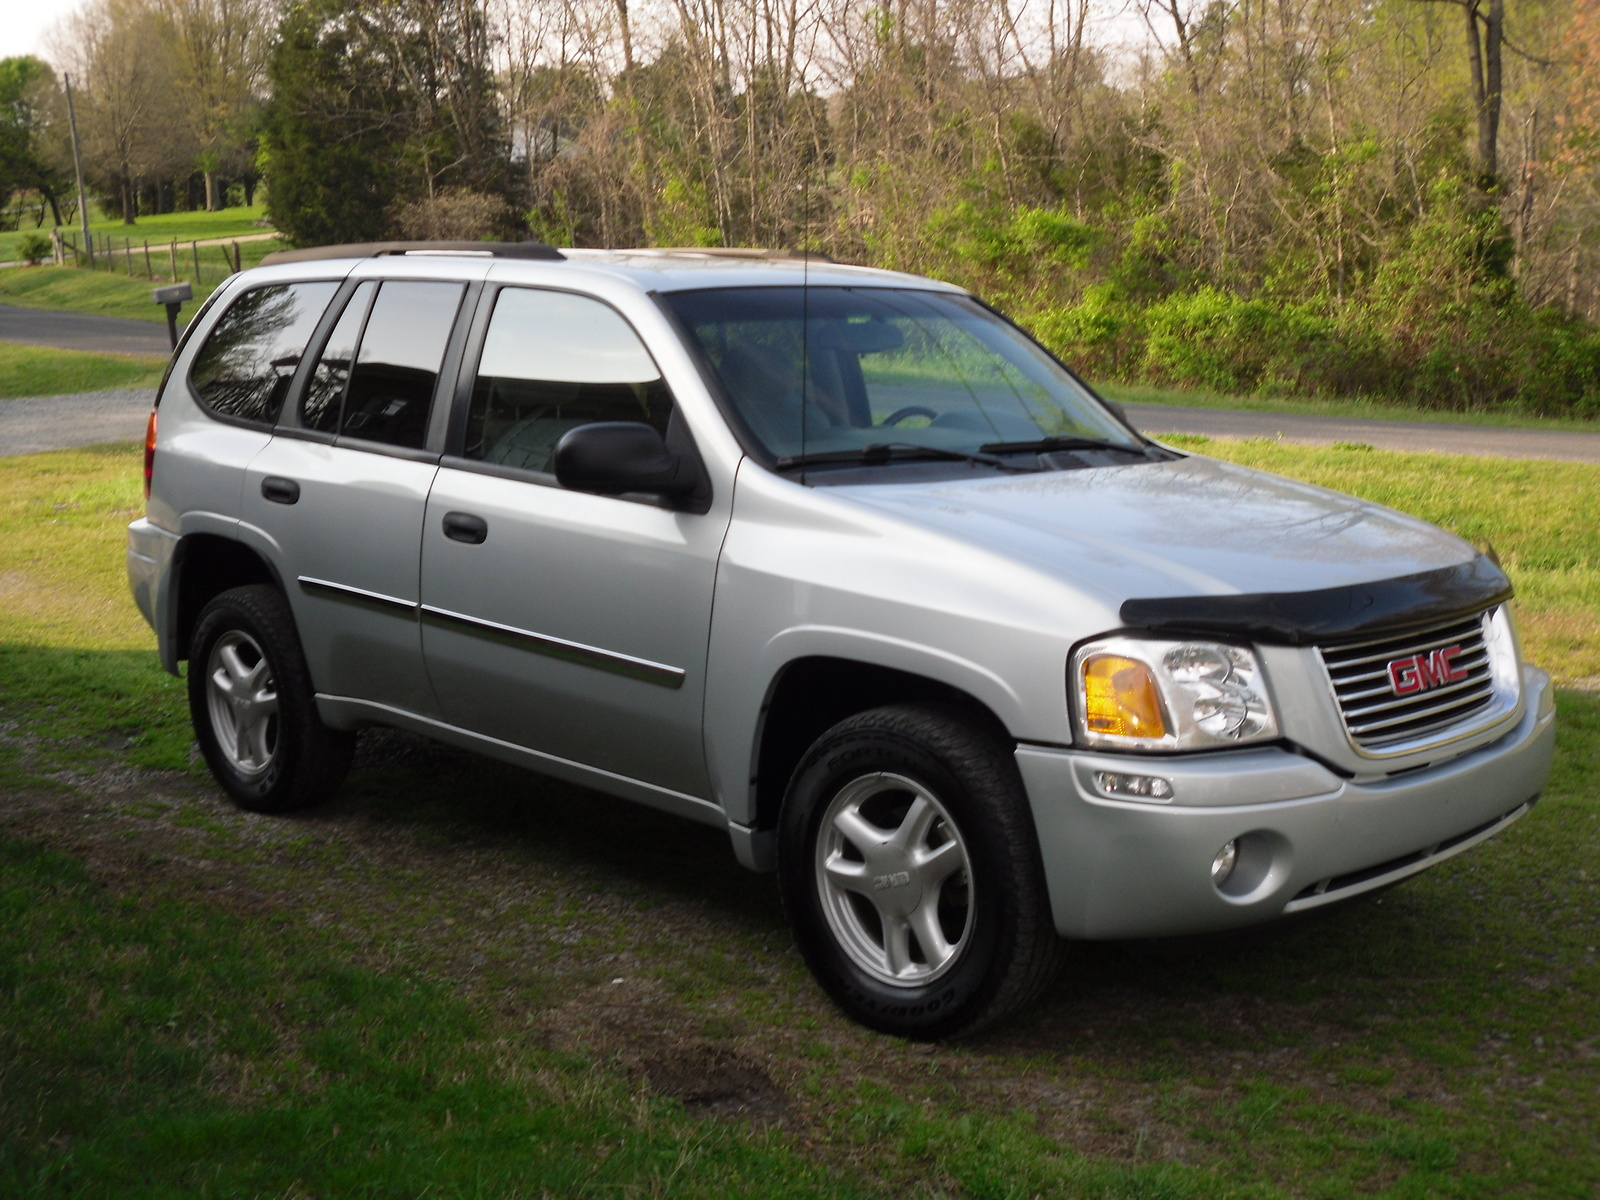 2004 Gmc Envoy Overview Images Of Home Design Rear Suspension 18 Known Problems Low Due To Failed Air Pressor On Vehicles Equipped With Springs The Compressor May Fail